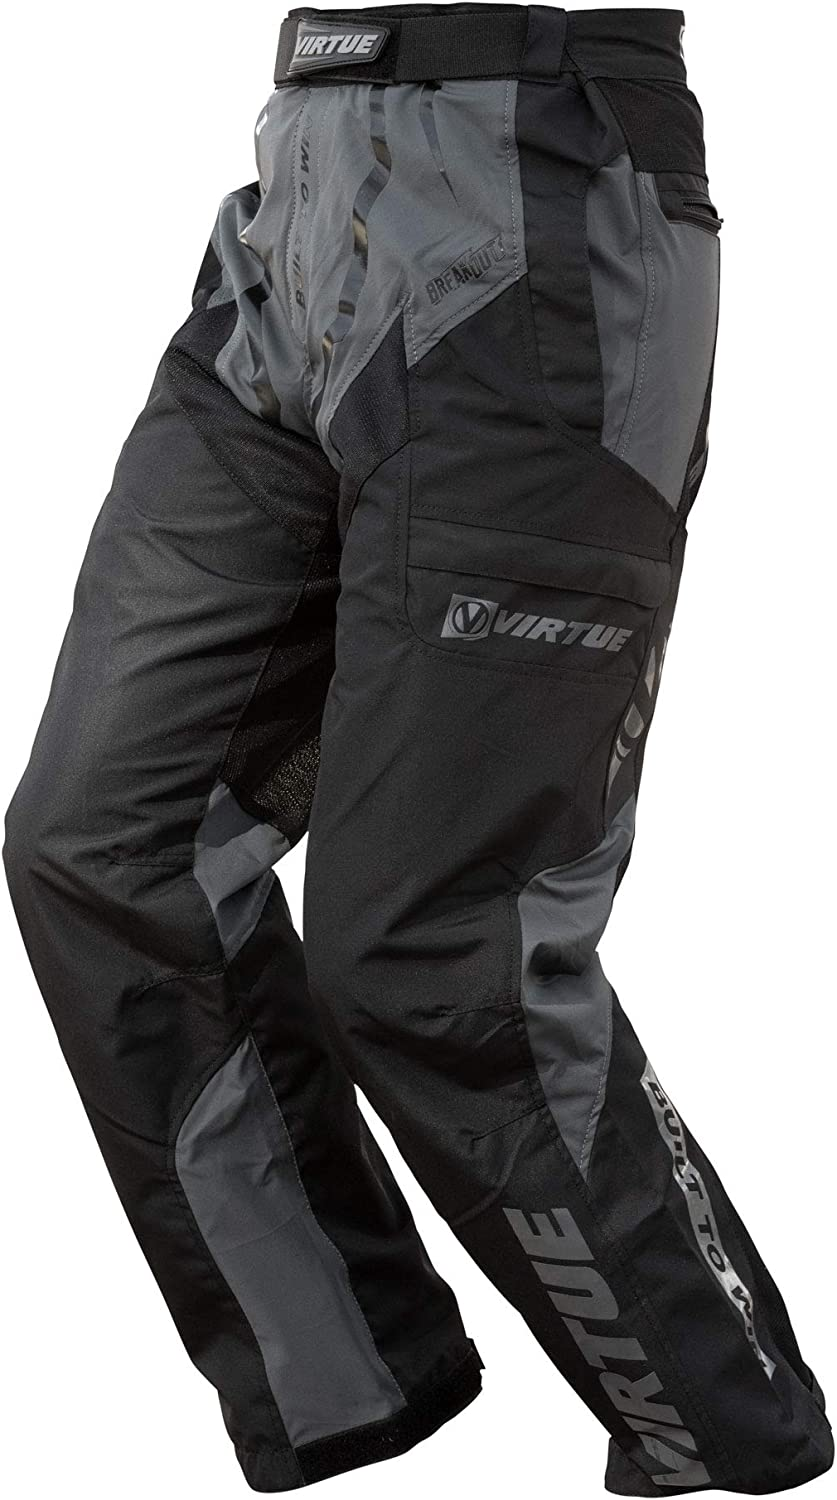 VIRTUE Breakout Latest item Pants for Max 82% OFF Paintball Sports and Airsoft Action